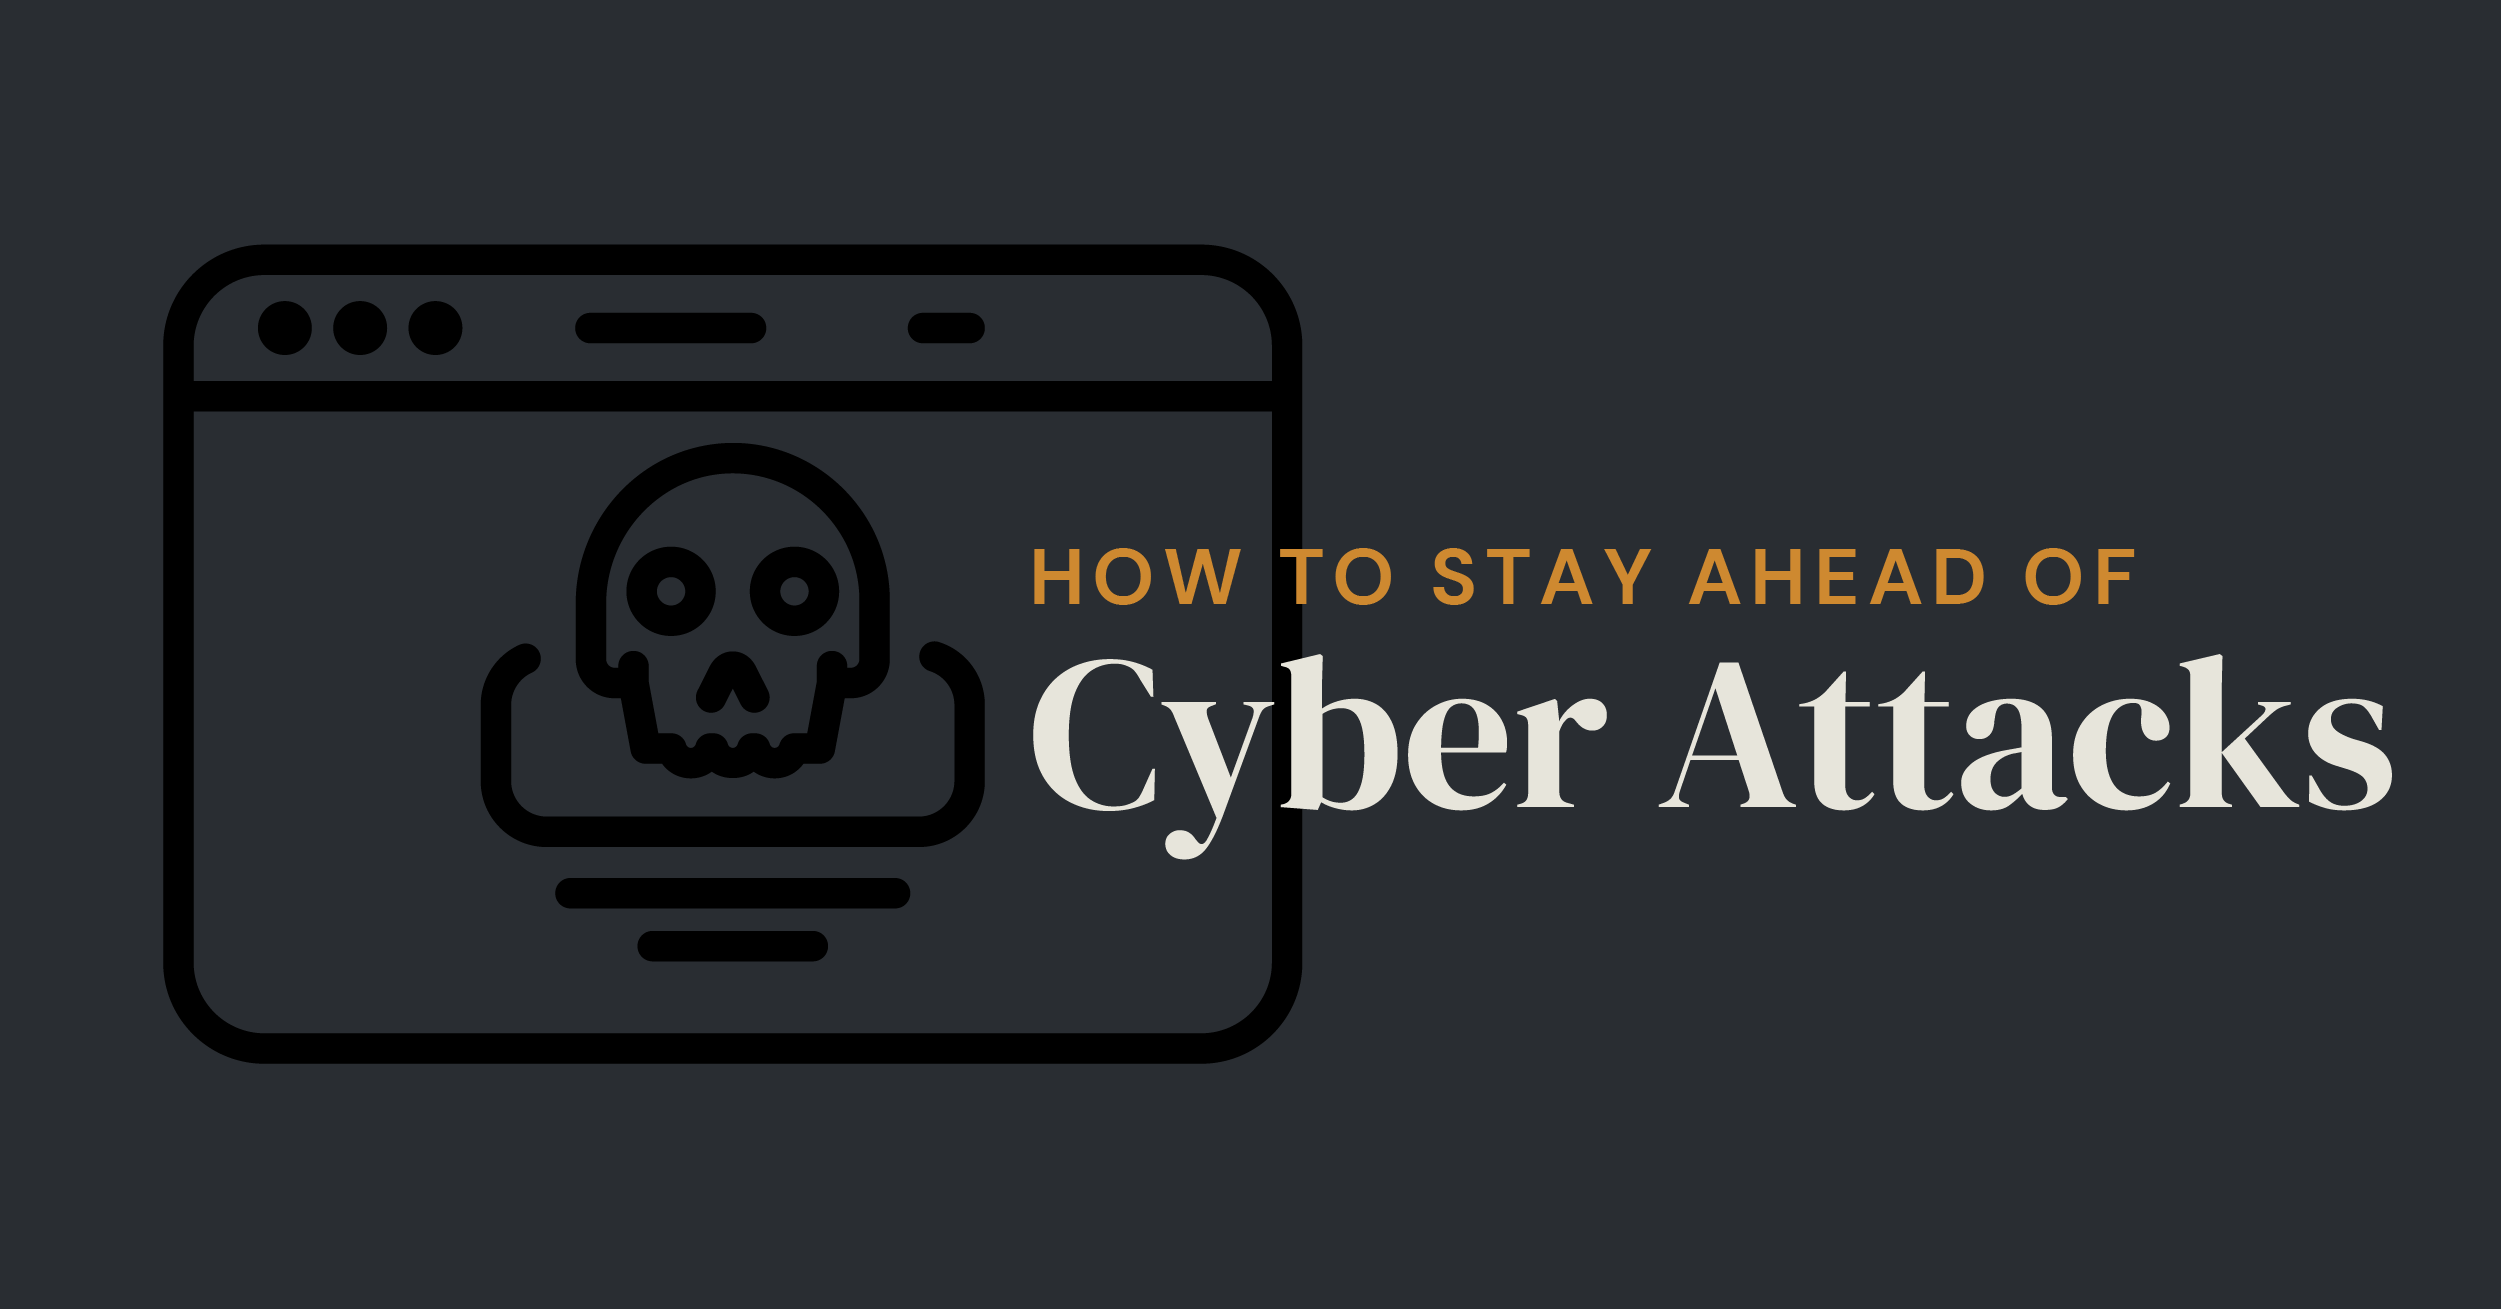 Stay Ahead of Cyber Attacks